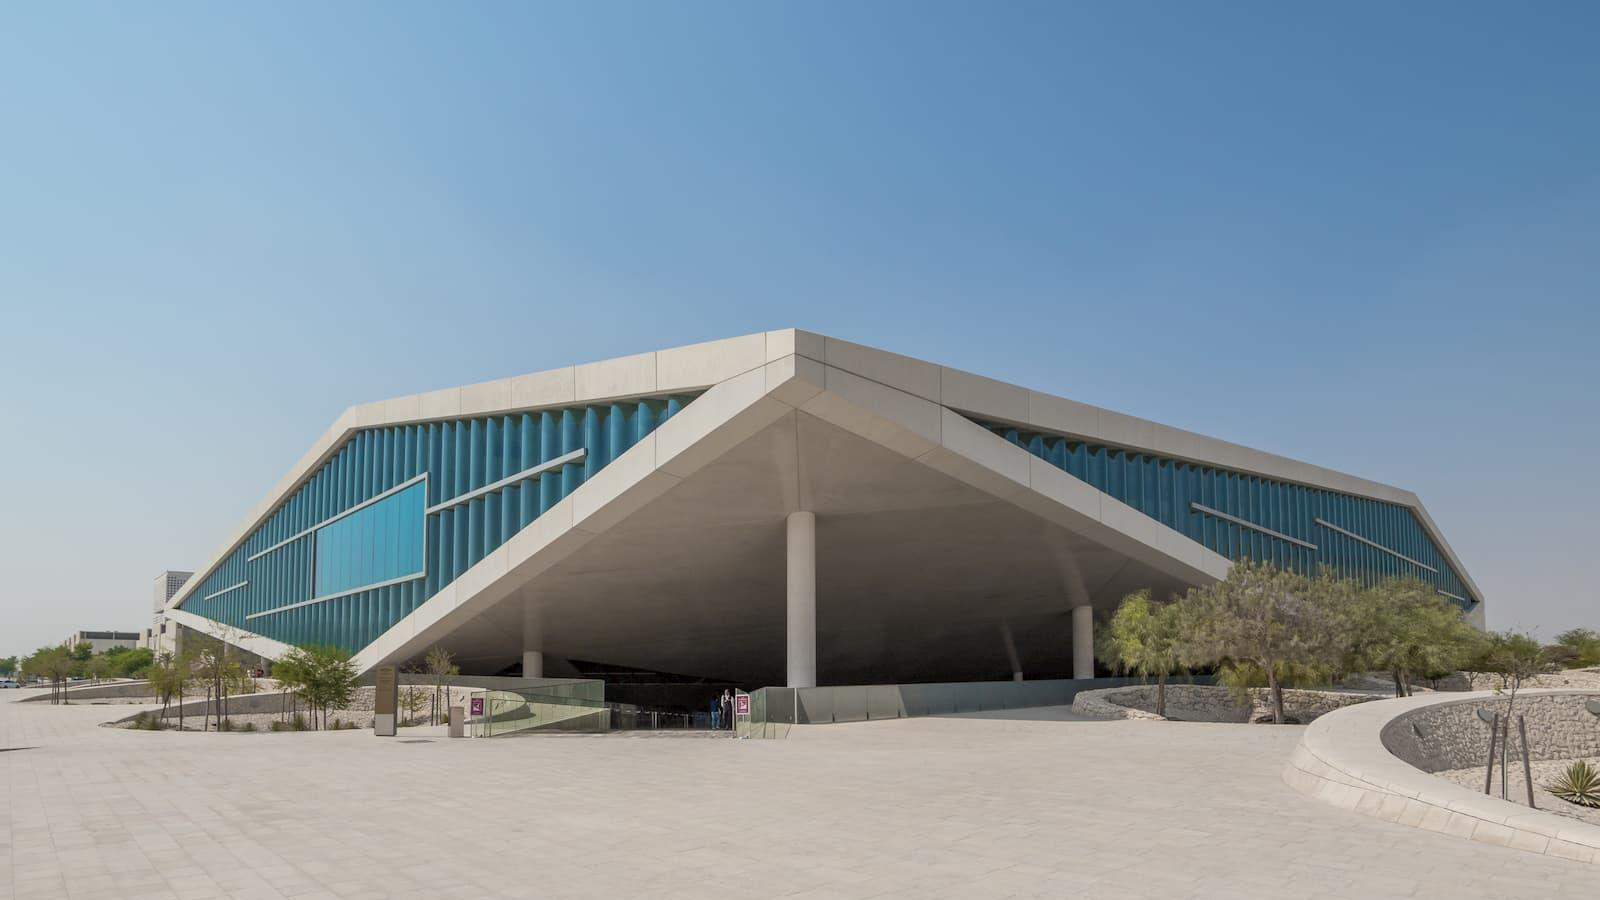 Qatar National Library events in January to focus on year-round learning